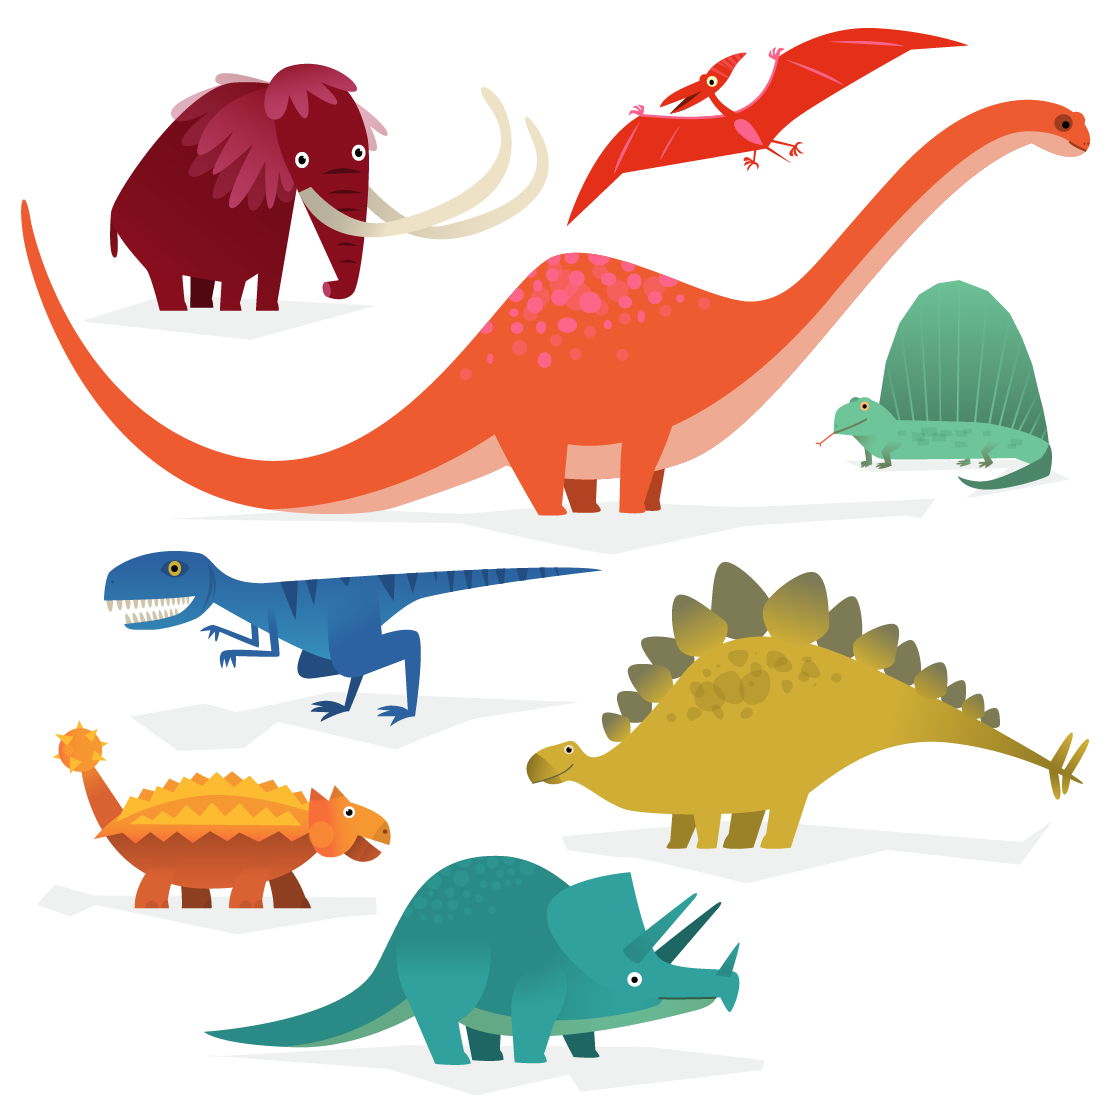 I have to spend next week drawing dinosaurs. I love my job.